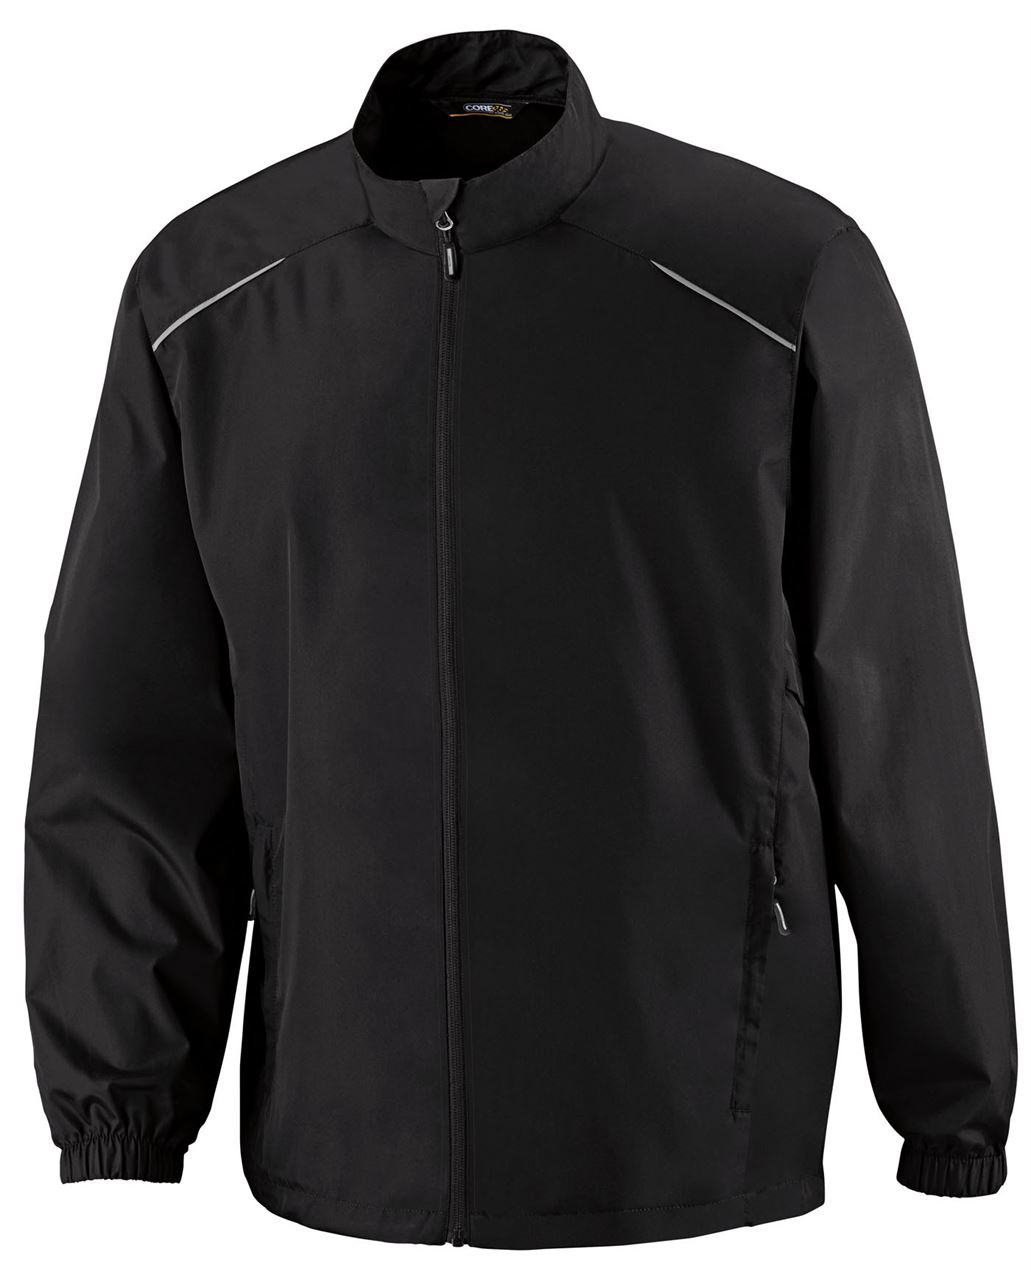 Picture of Core365 Tall Men's Unlined Lightweight Jacket